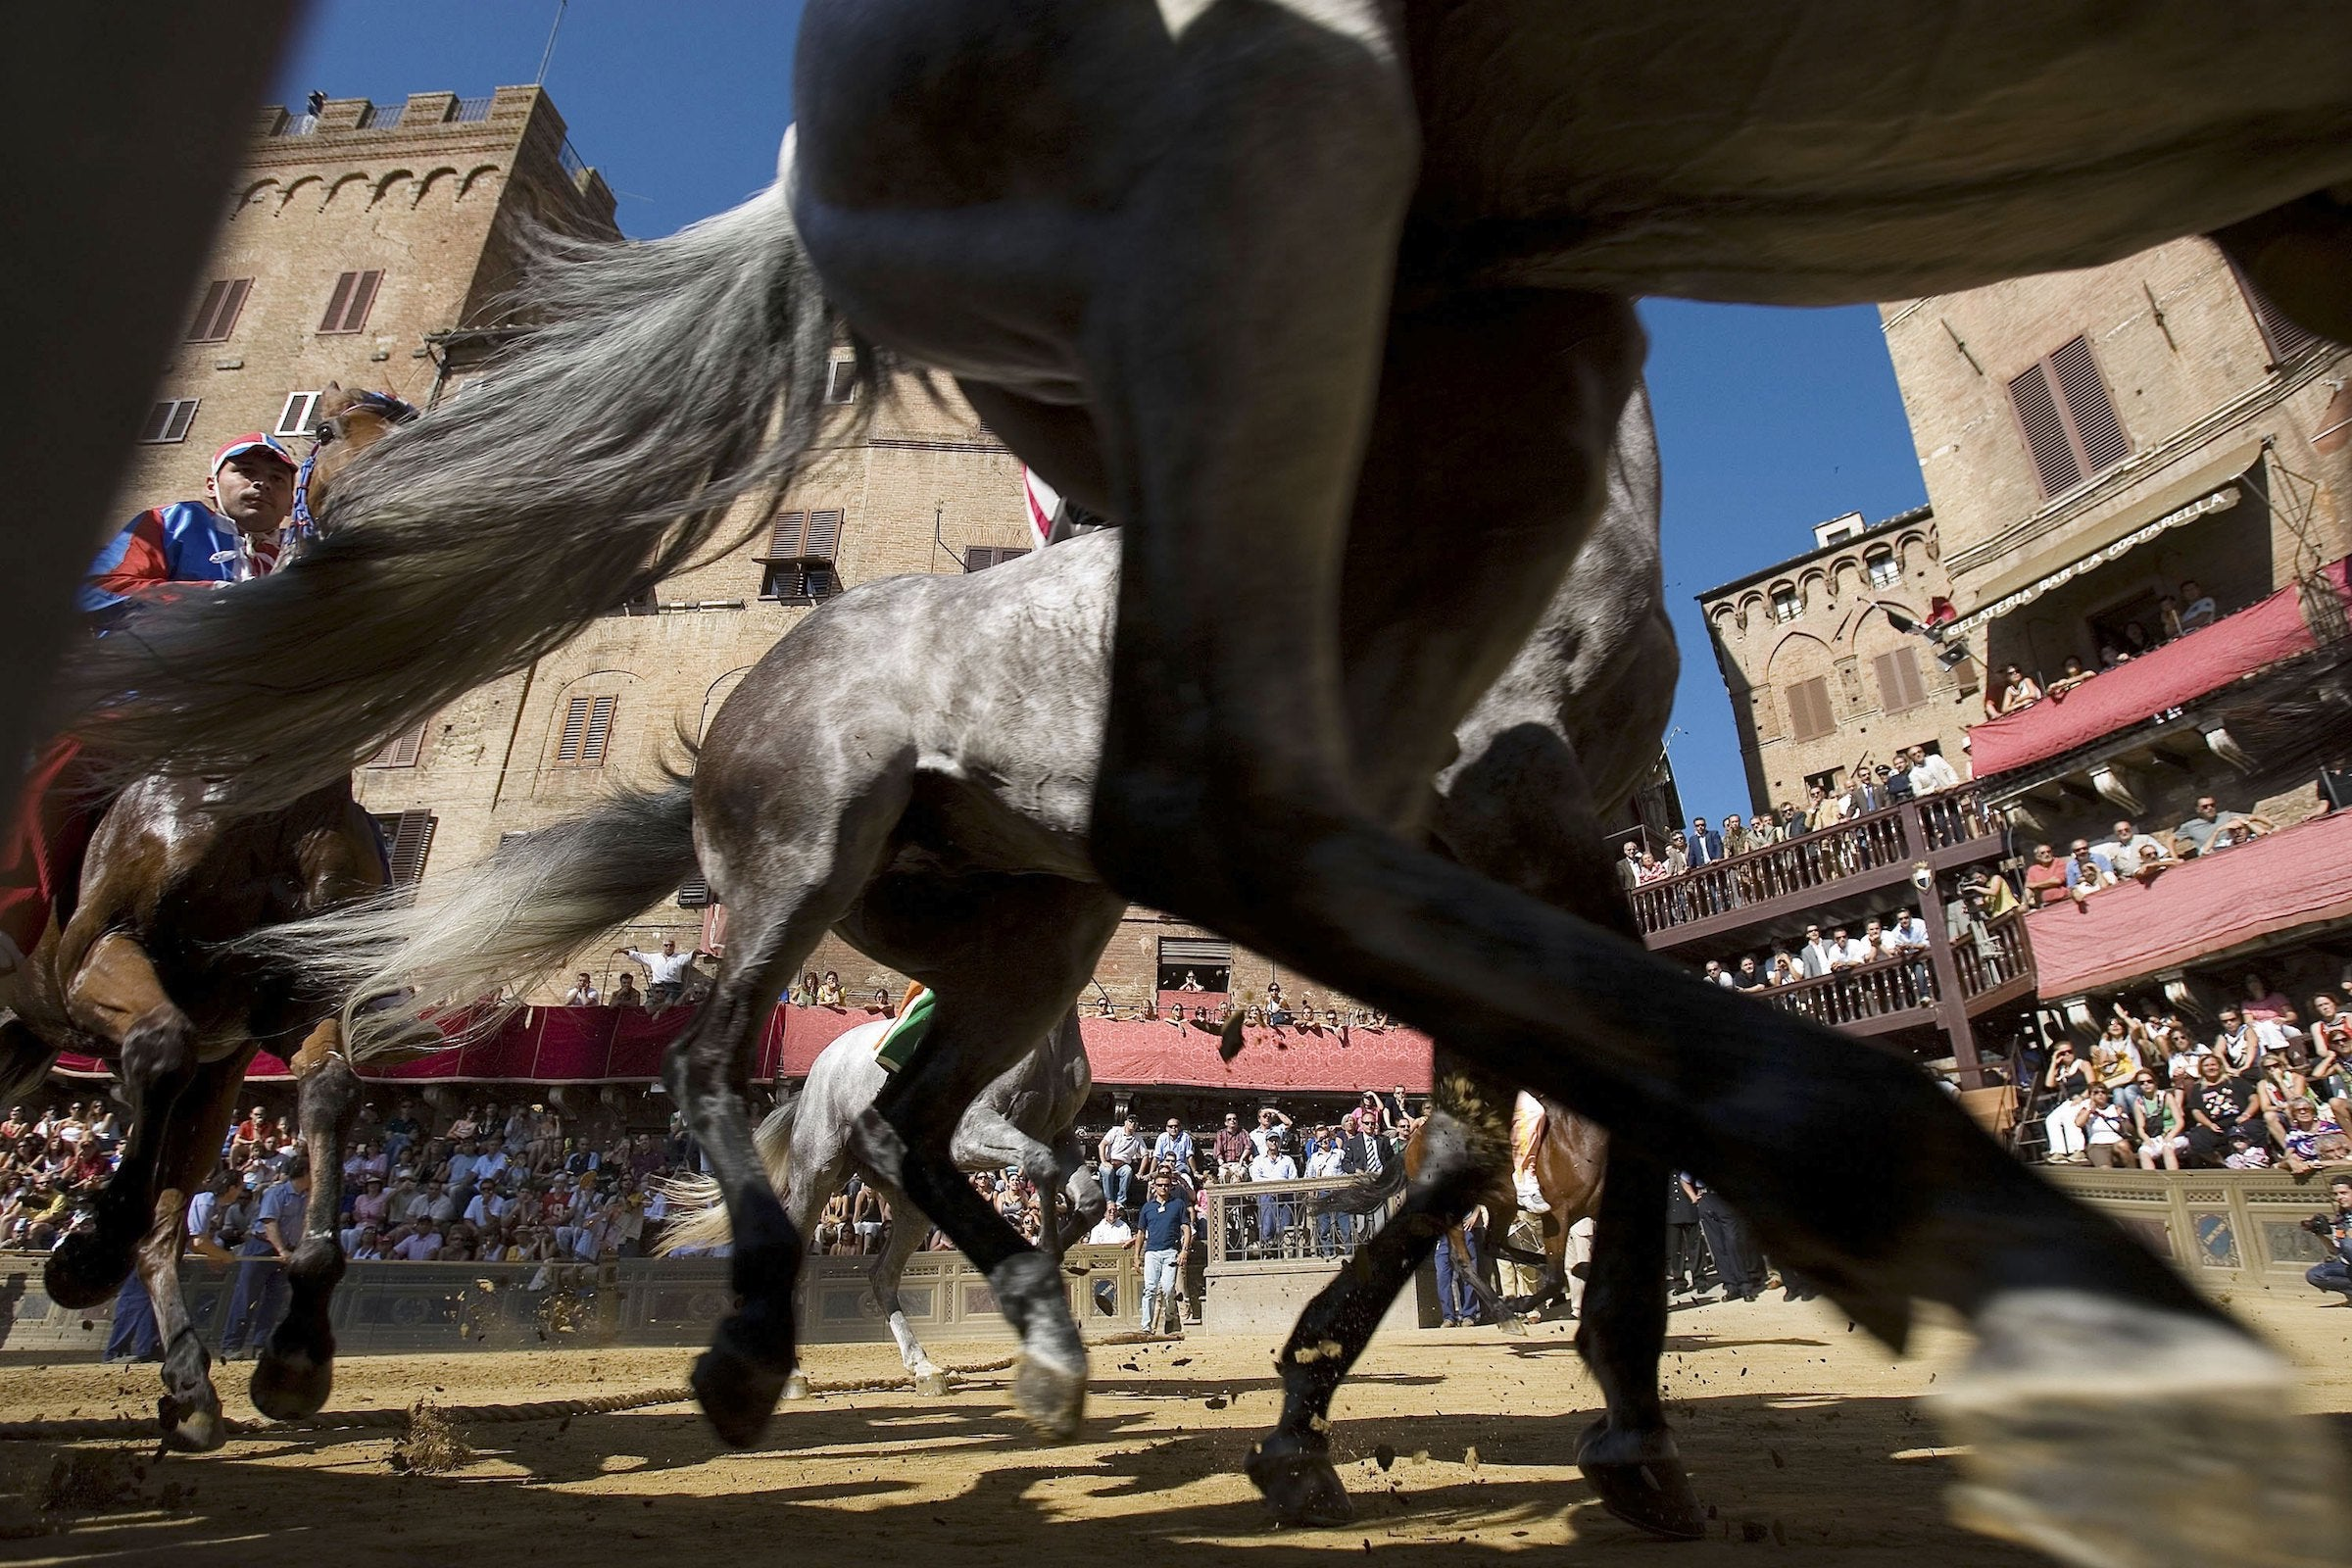 What it's like to witness the Palio di Siena, possibly the most